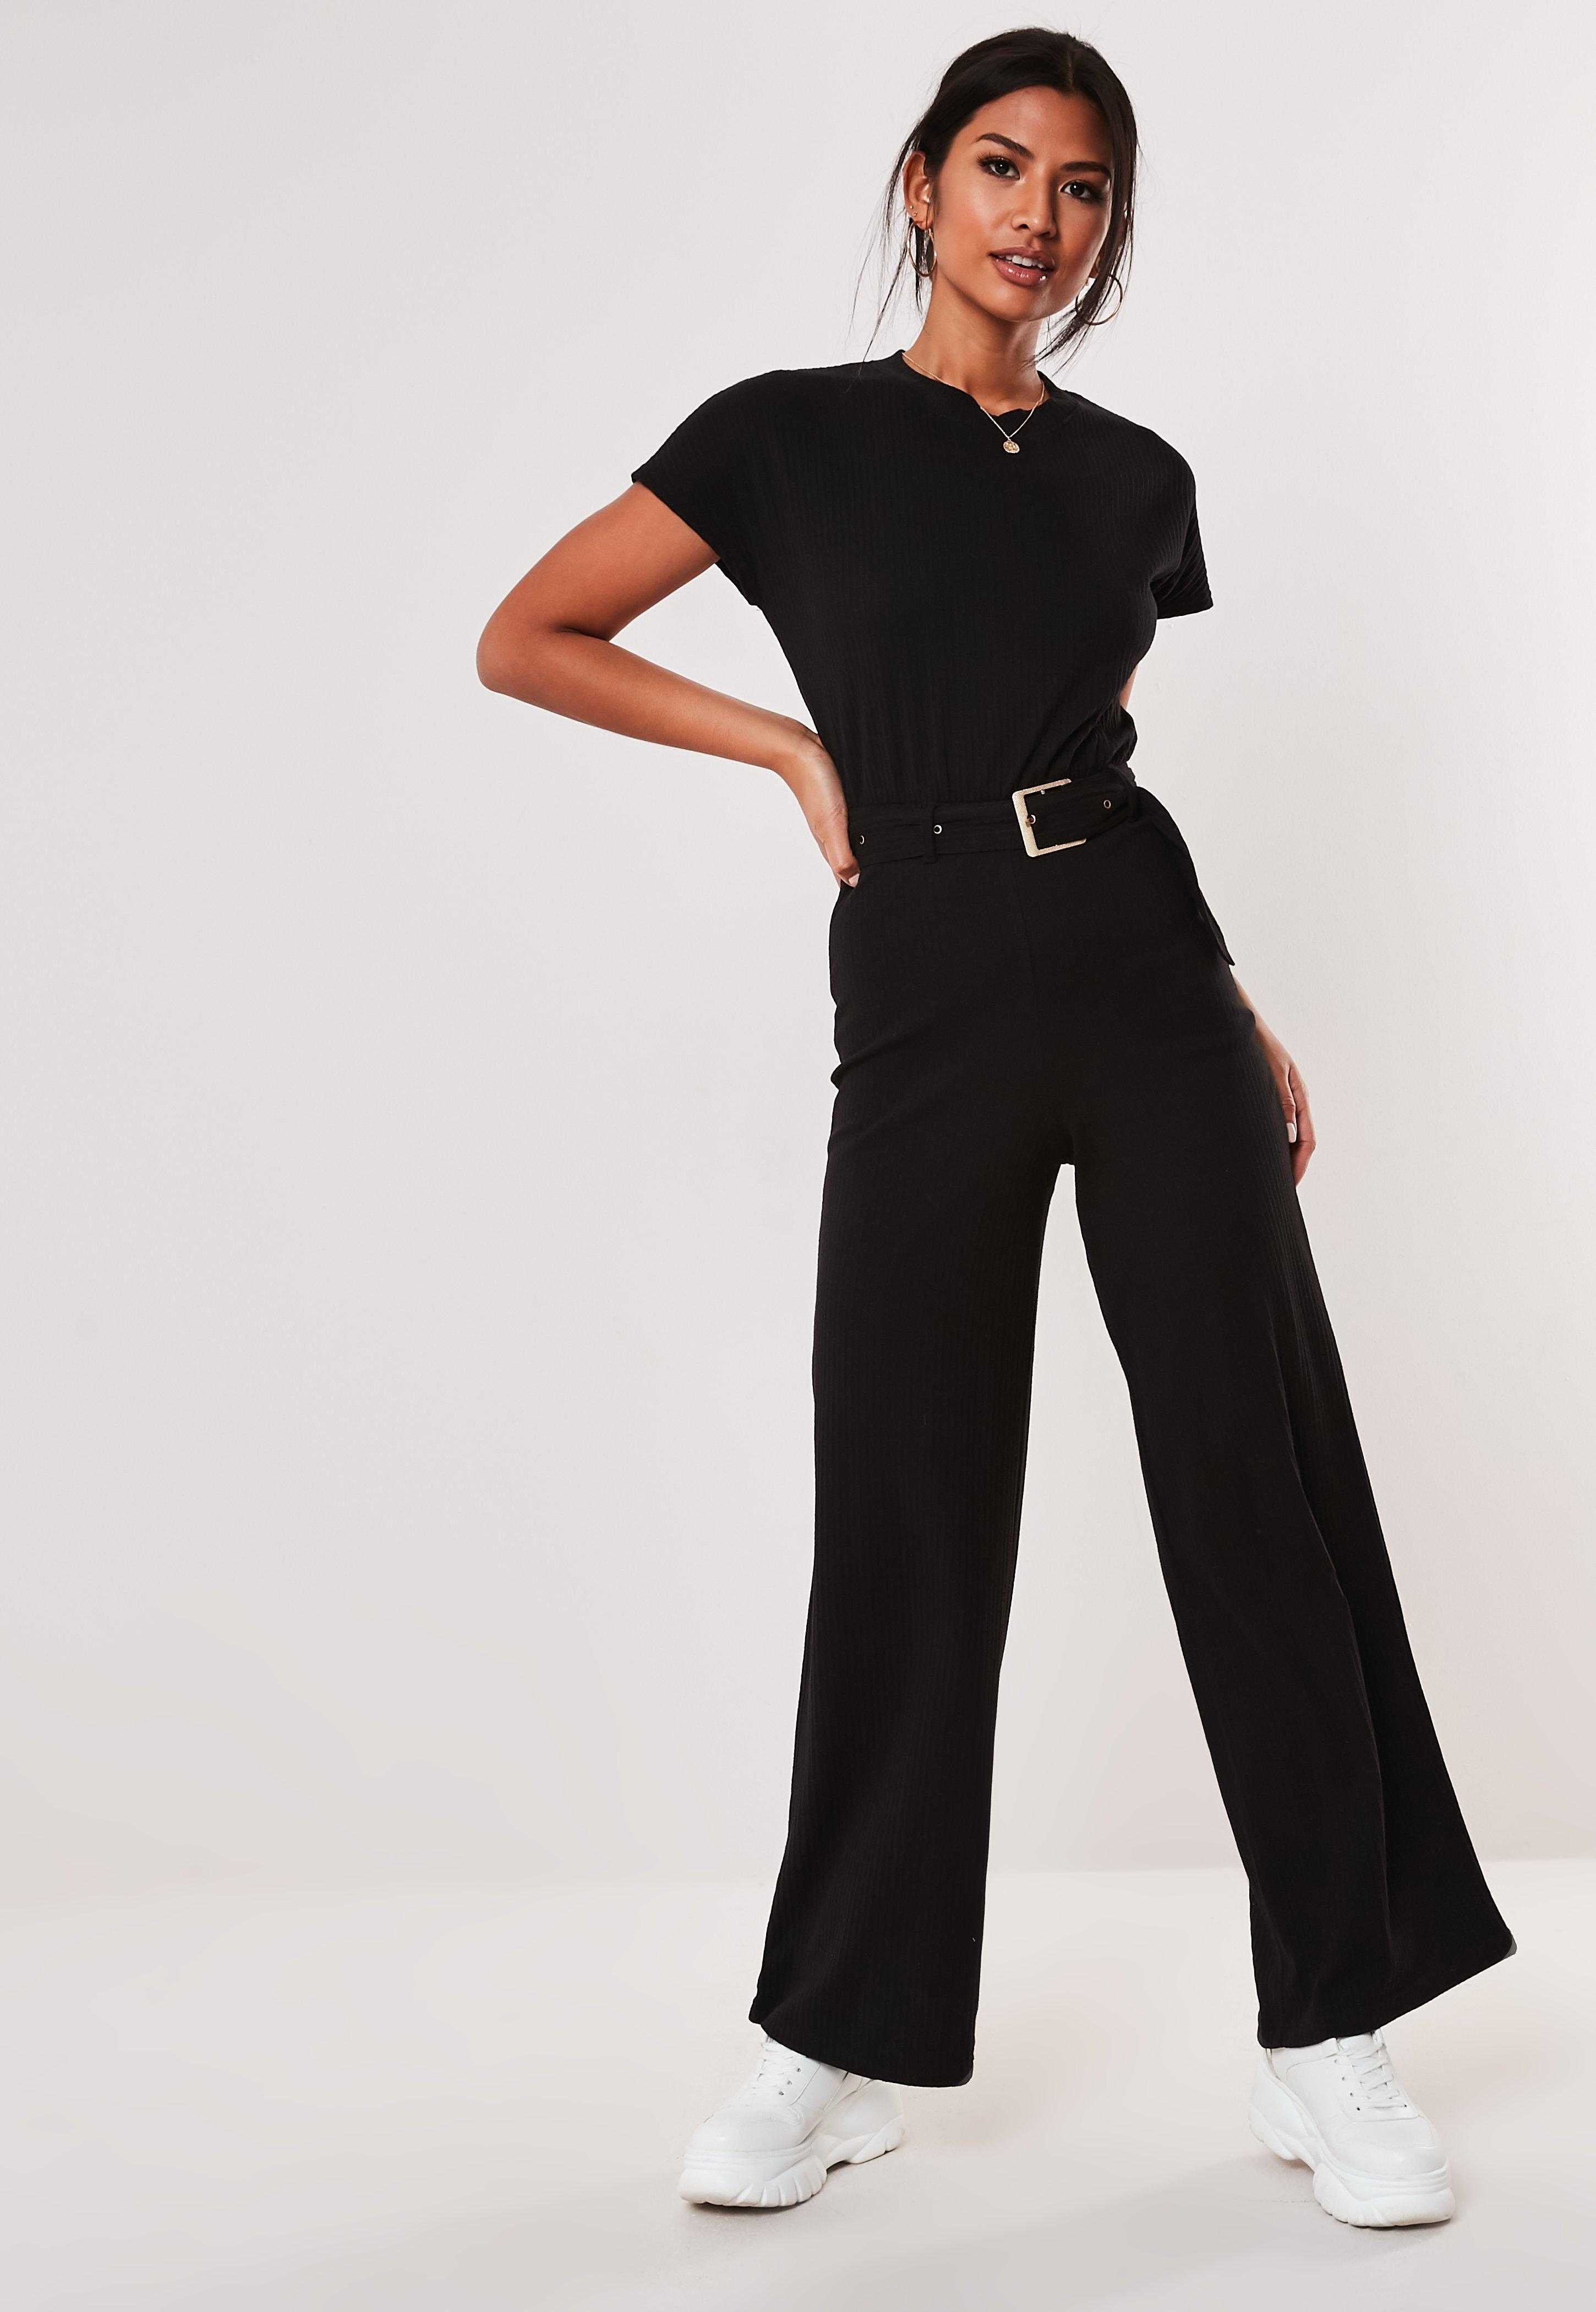 2018 Summer New Women Sexy Square Collar Slim Fit Jumpsuit Women's Clothing